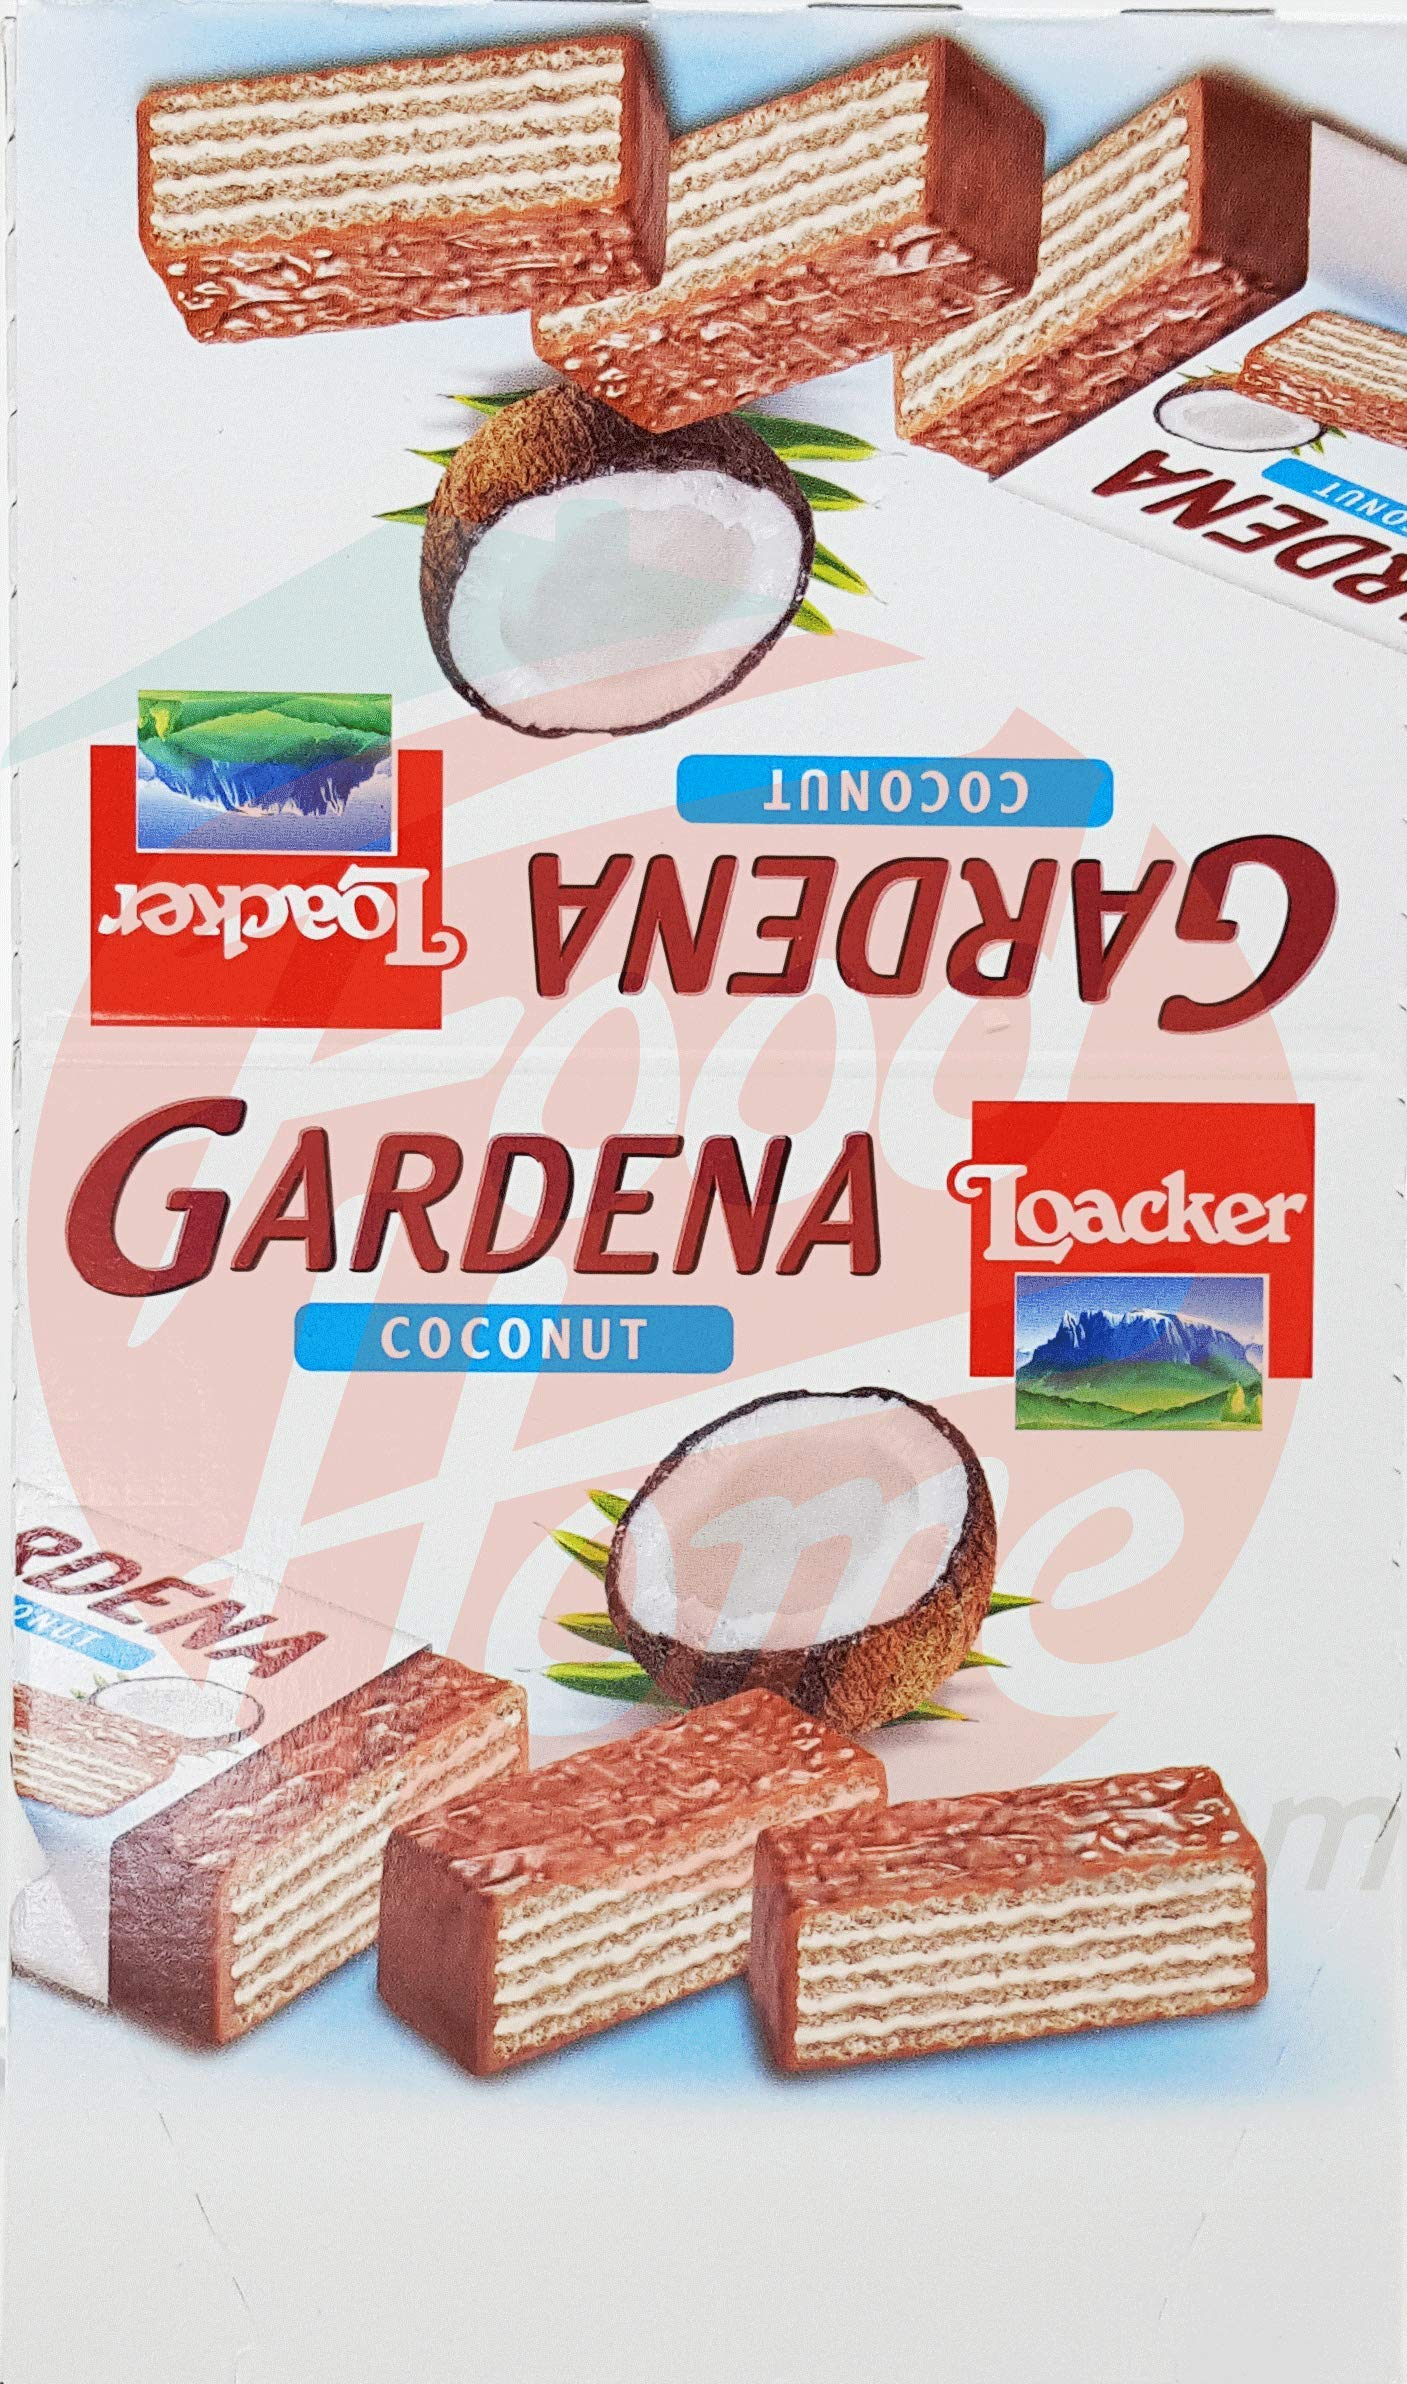 Loacker Gardena Coconut milk chocolate coated wafers with cream filling, 38-gram in wrapper (Case of 25x38-g)